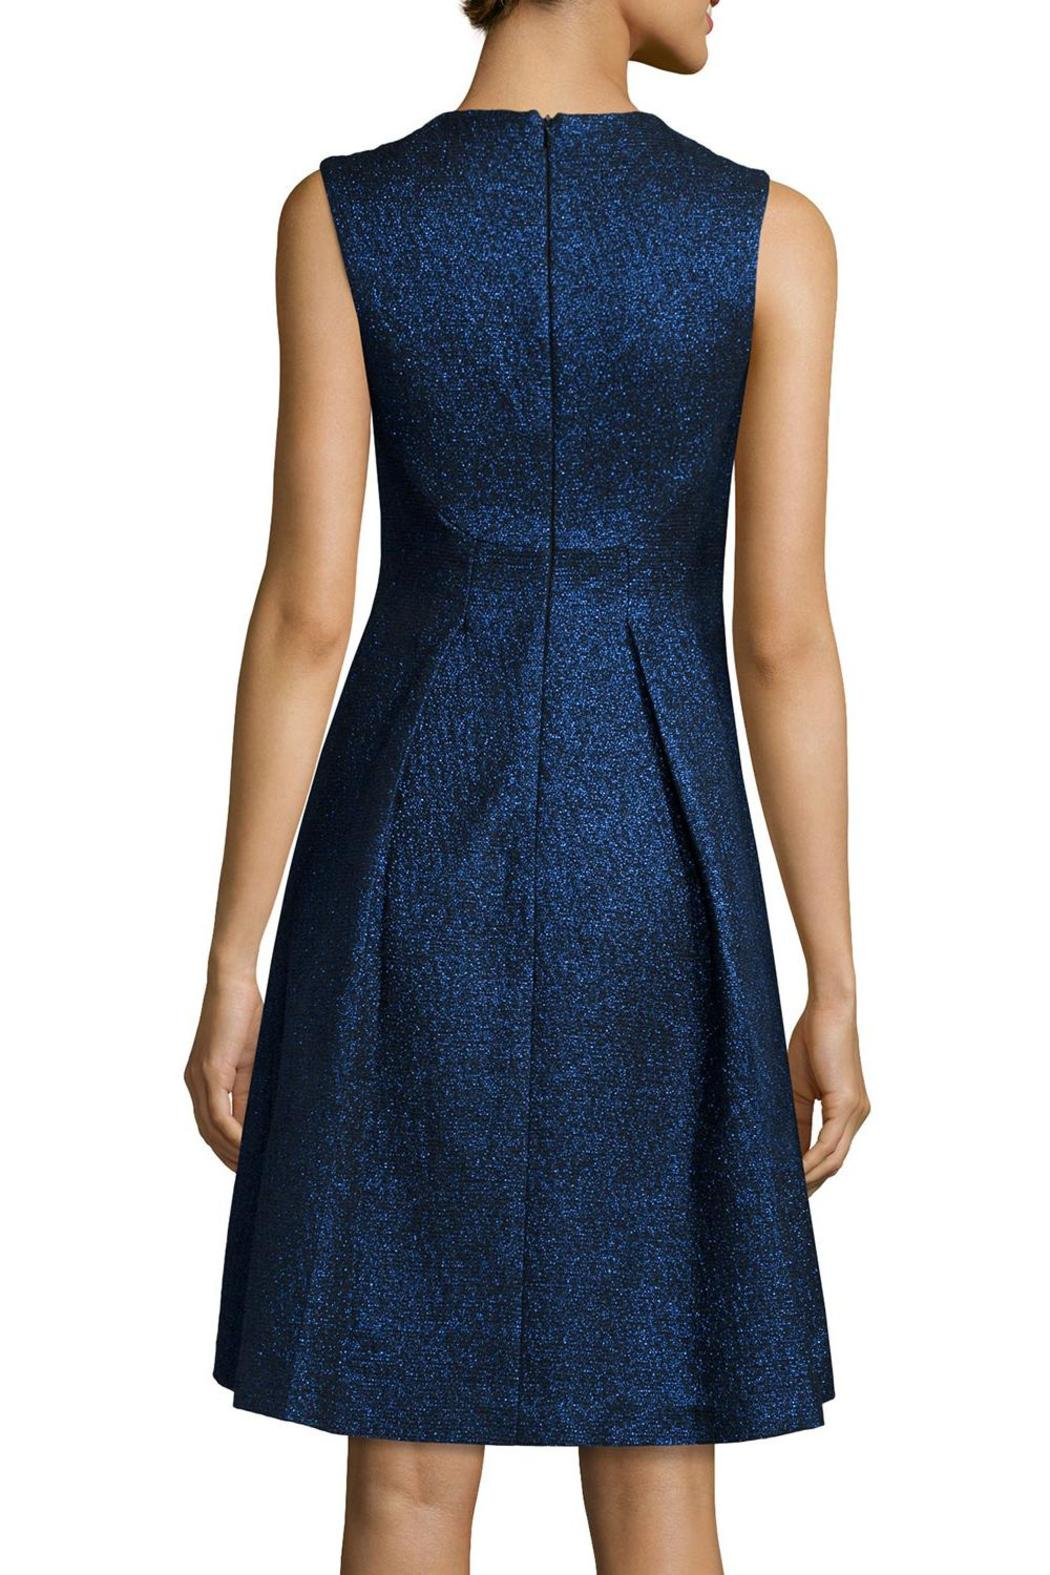 Lela Rose  V-Neck Dress - Front Full Image